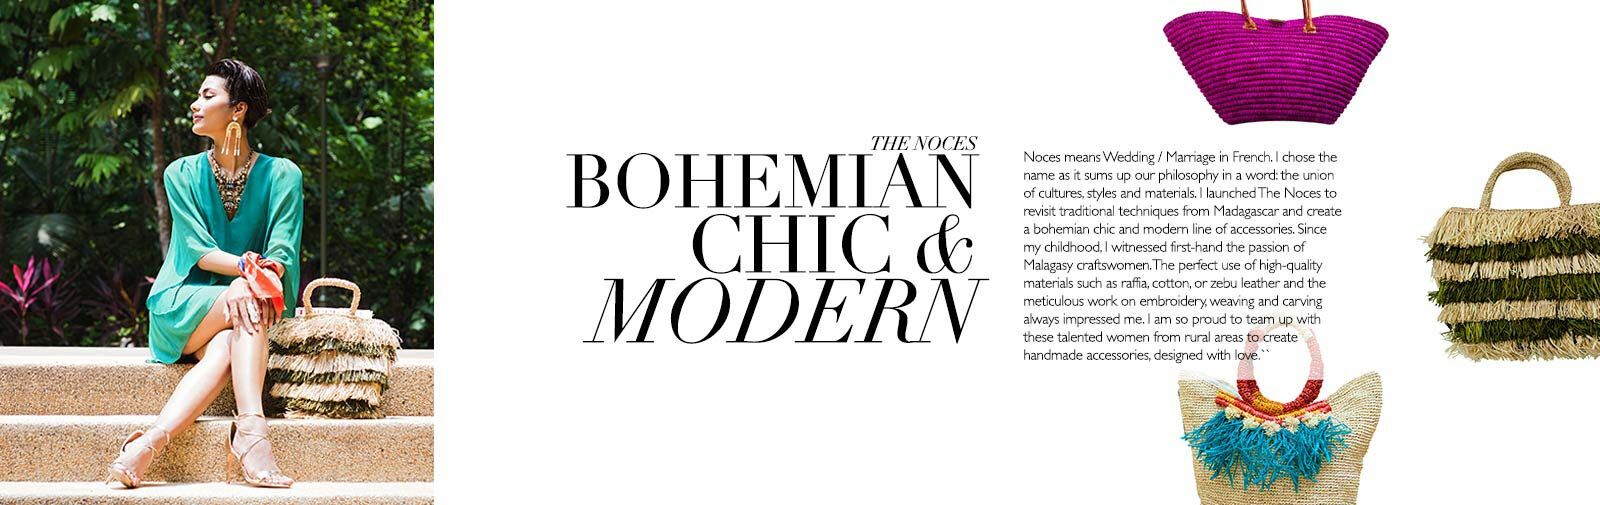 THE NOCES - BOHEMIAN CHIC & MODERN - The Noces - The Noces meaning marriage in French was chosen for the brand name to describe their philosophy and ethos. A family run company. The Noces is a union of cultures, materials and styles working alongside Malagasy artisans with a passion for promote environmentally-friendly practices. The Noces uses traditional techniques in order to create beautiful, unique handmade accessories which are all individually designed with love.  All of The Noces products were A handcrafted in Madagascar where The Noces contributes 5% of their annual profits to charities in Madagascar to help disadvantaged communities.